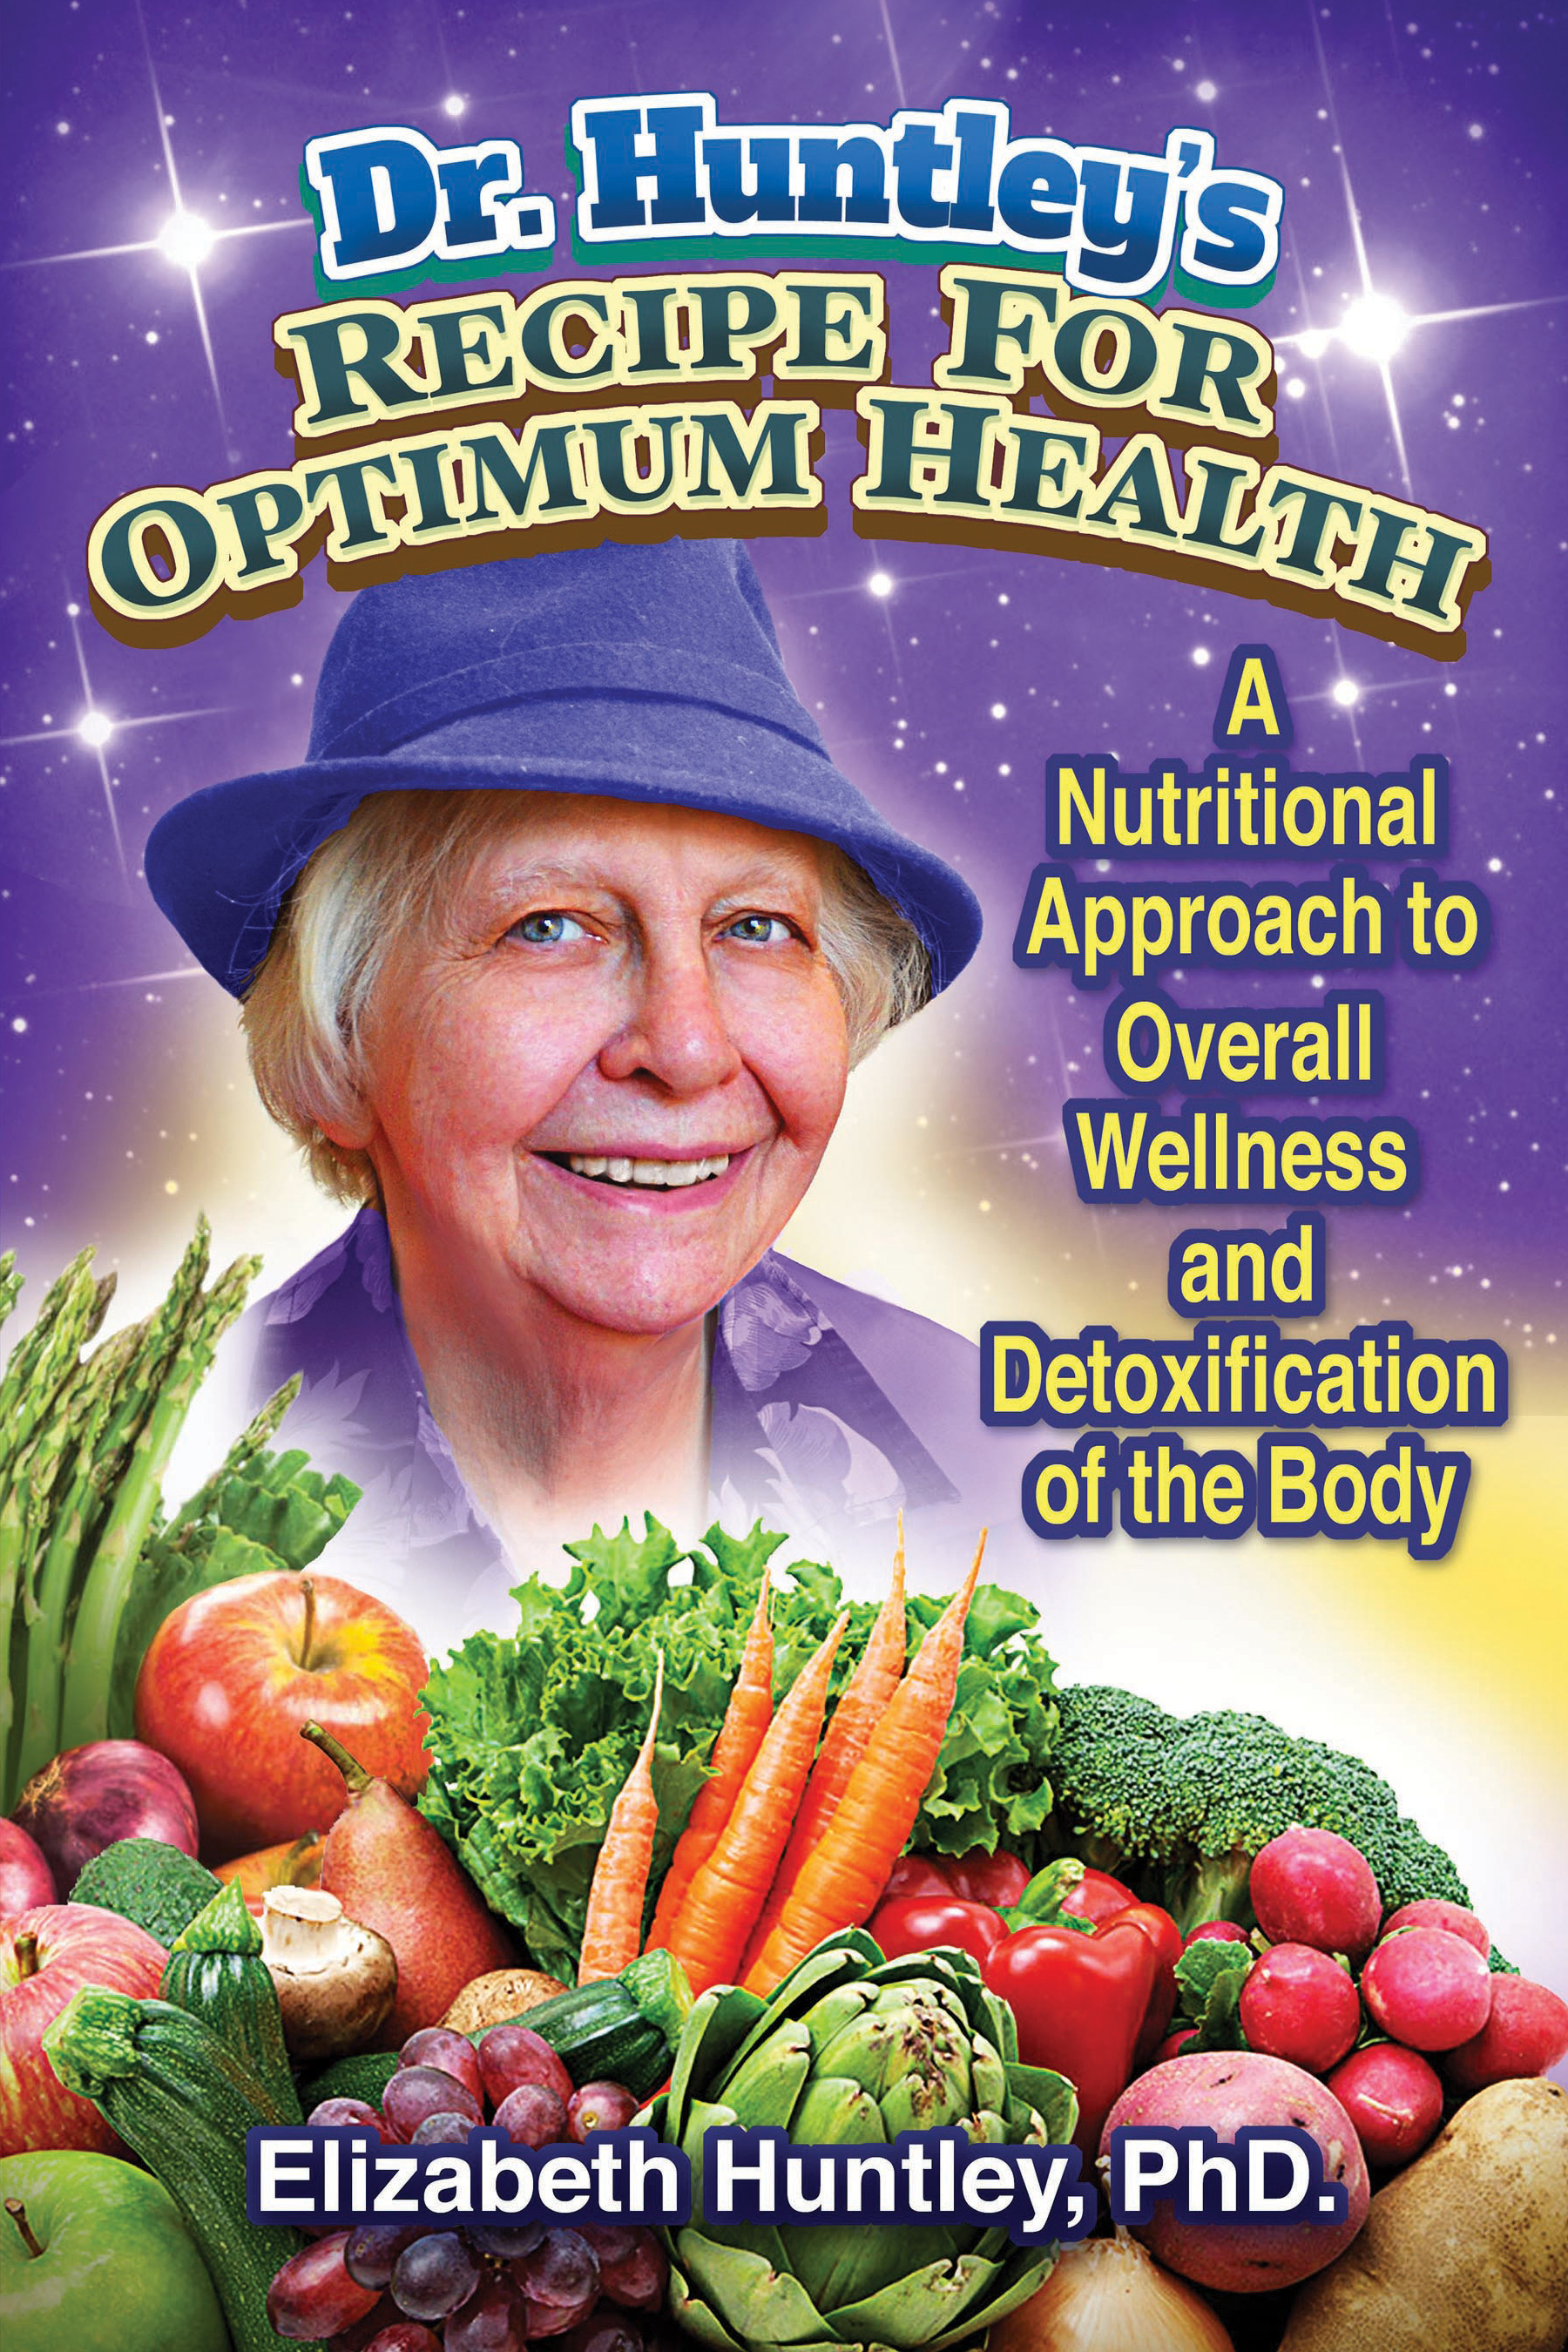 Dr. Huntley's Recipe for Optimum Health